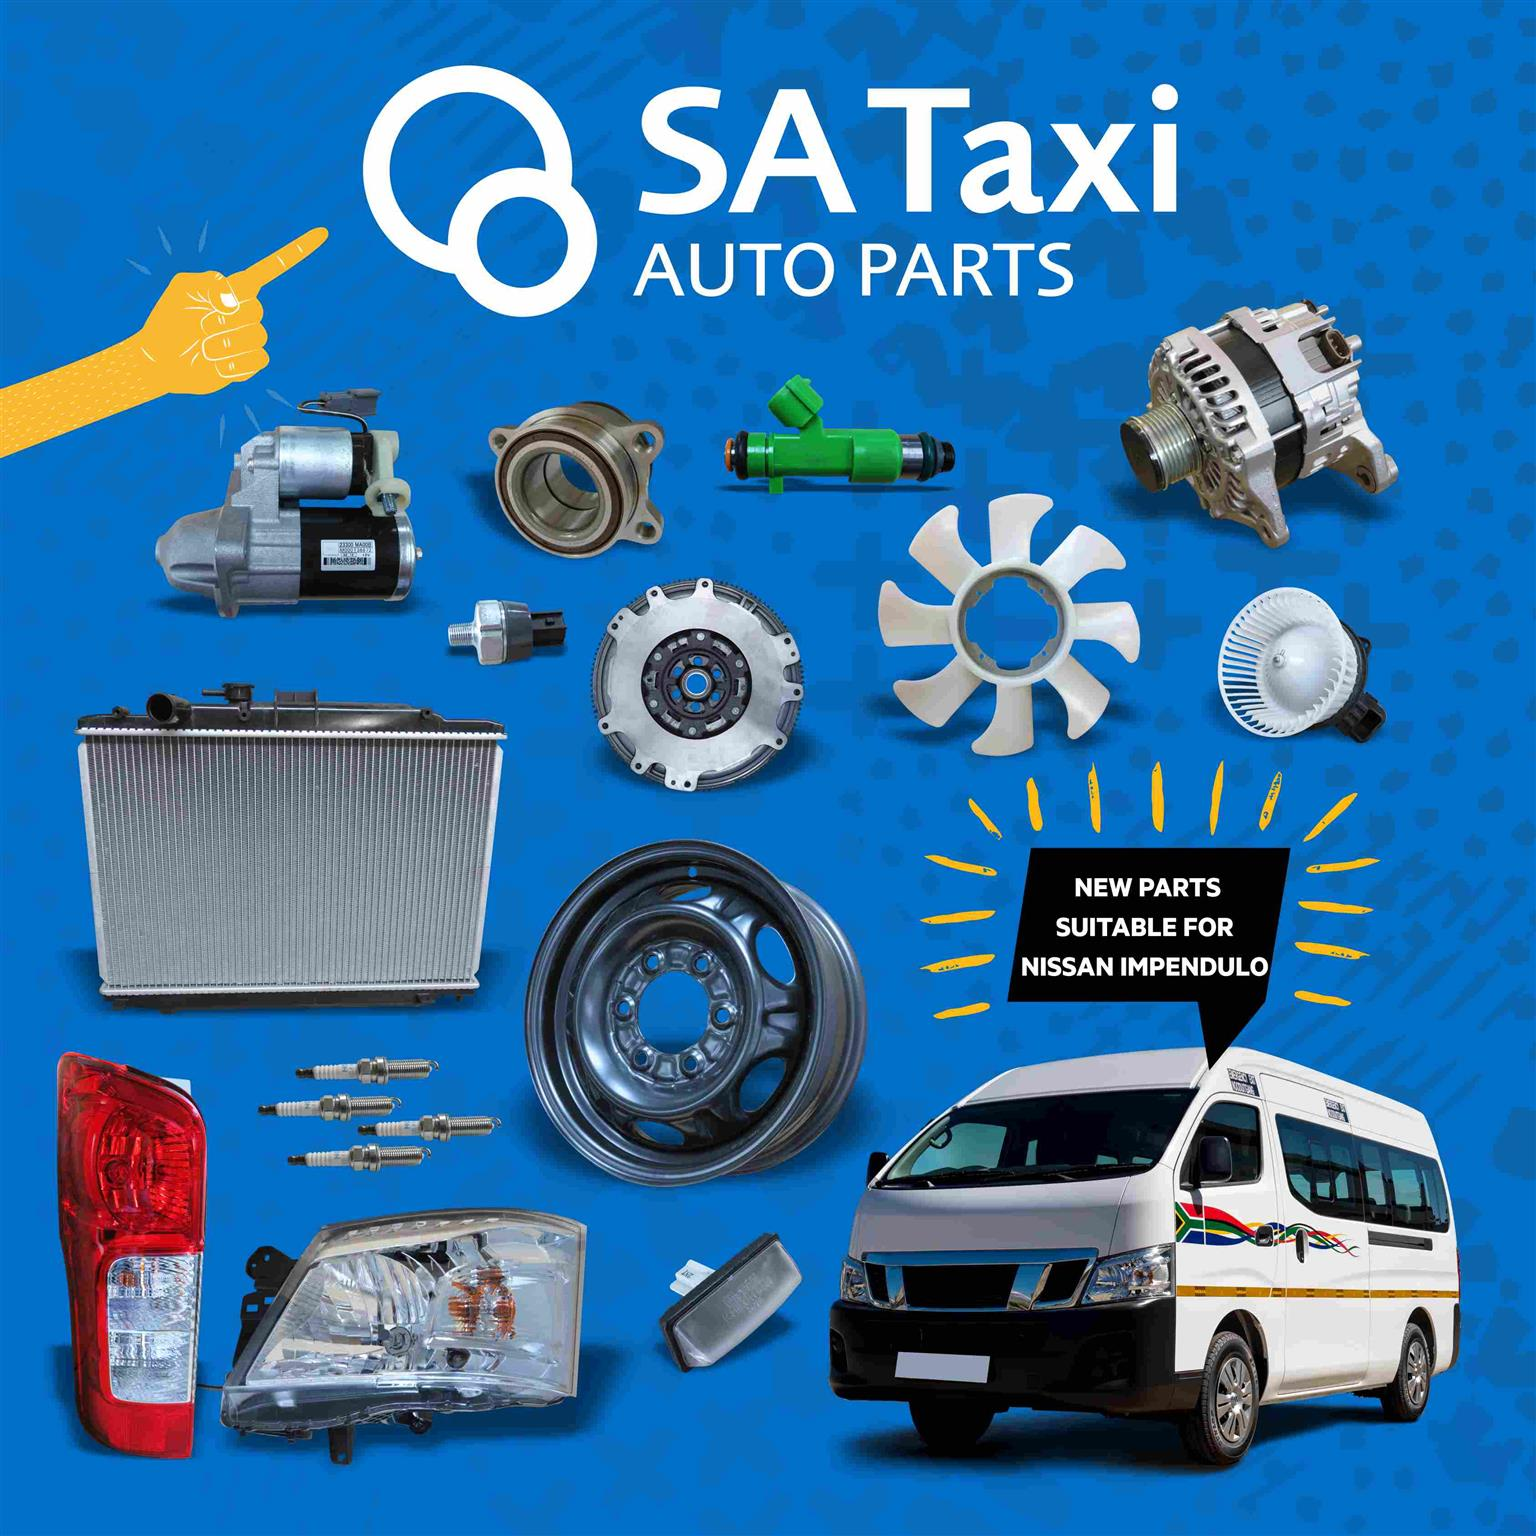 NEW FUEL INJECTOR suitable for Nissan NV350 Impendulo - SA Taxi Auto Parts quality spares